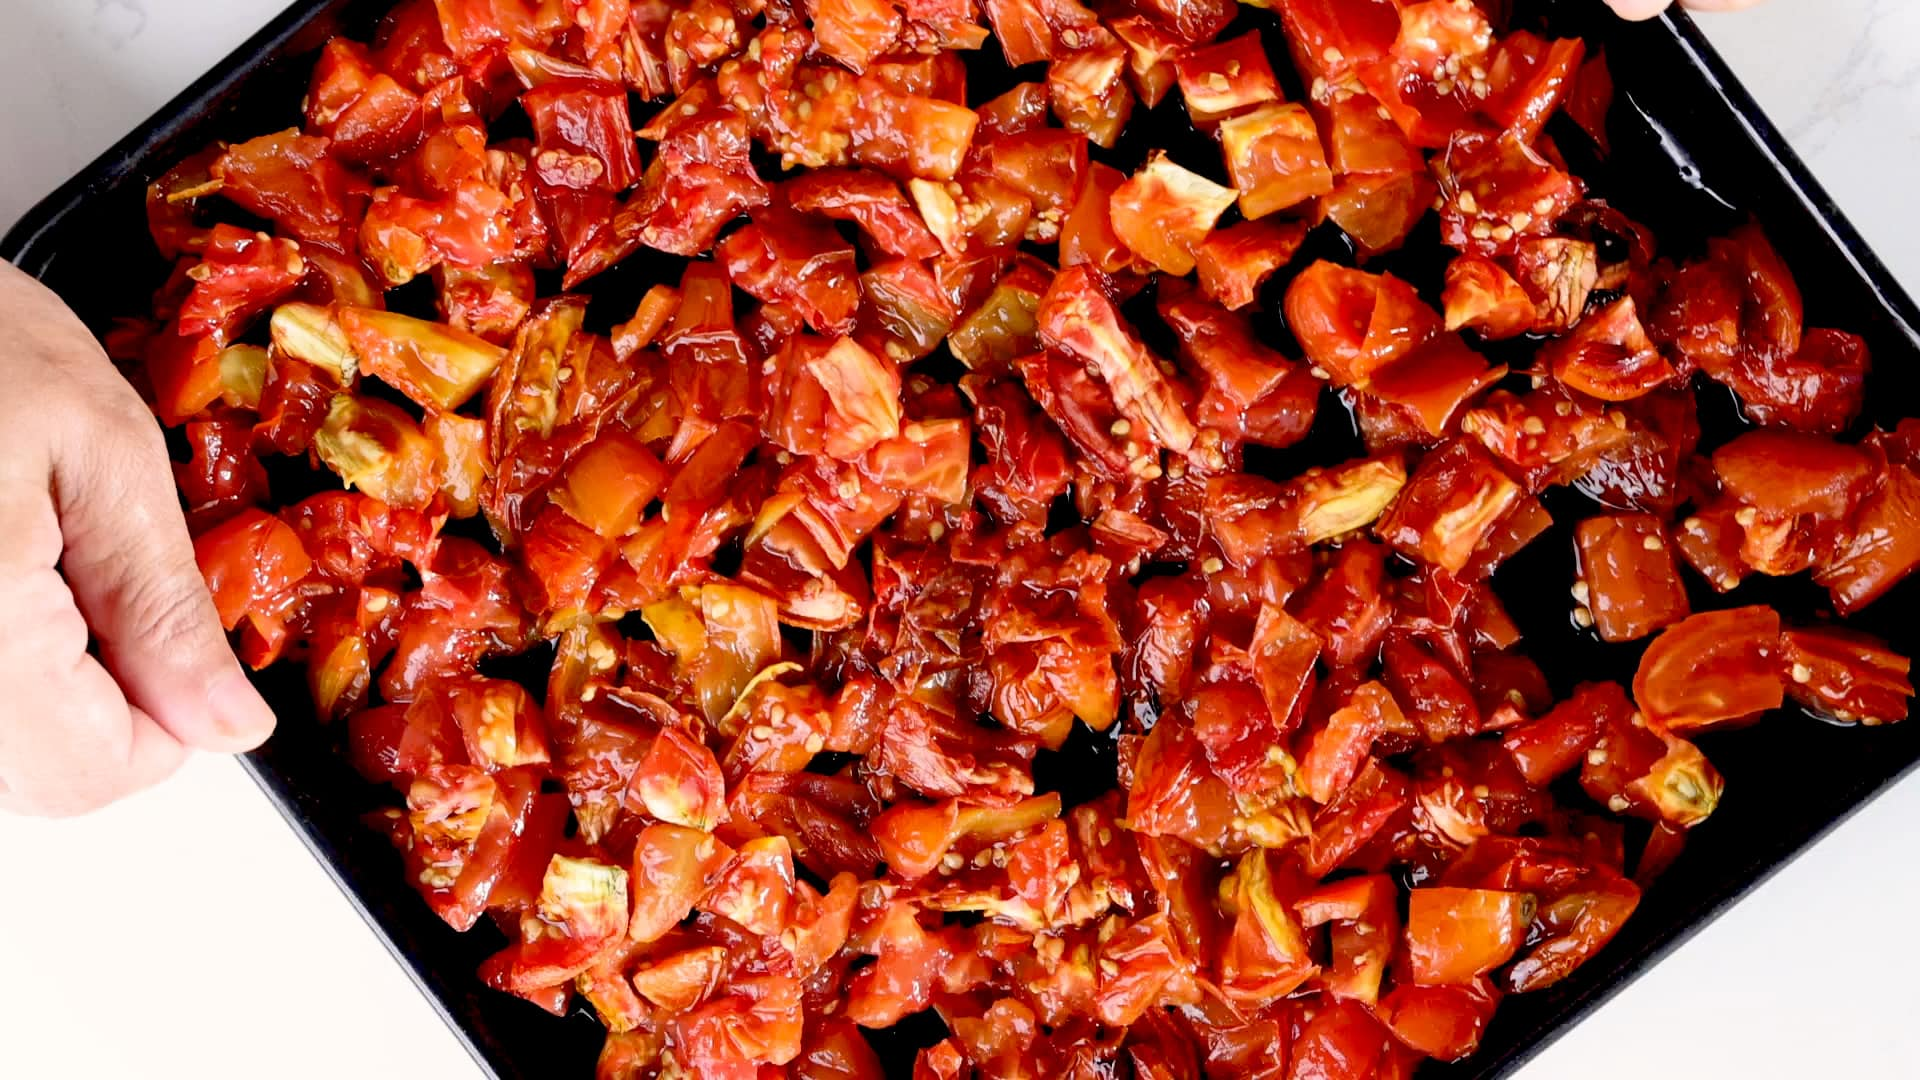 Roasted tomatoes on tray